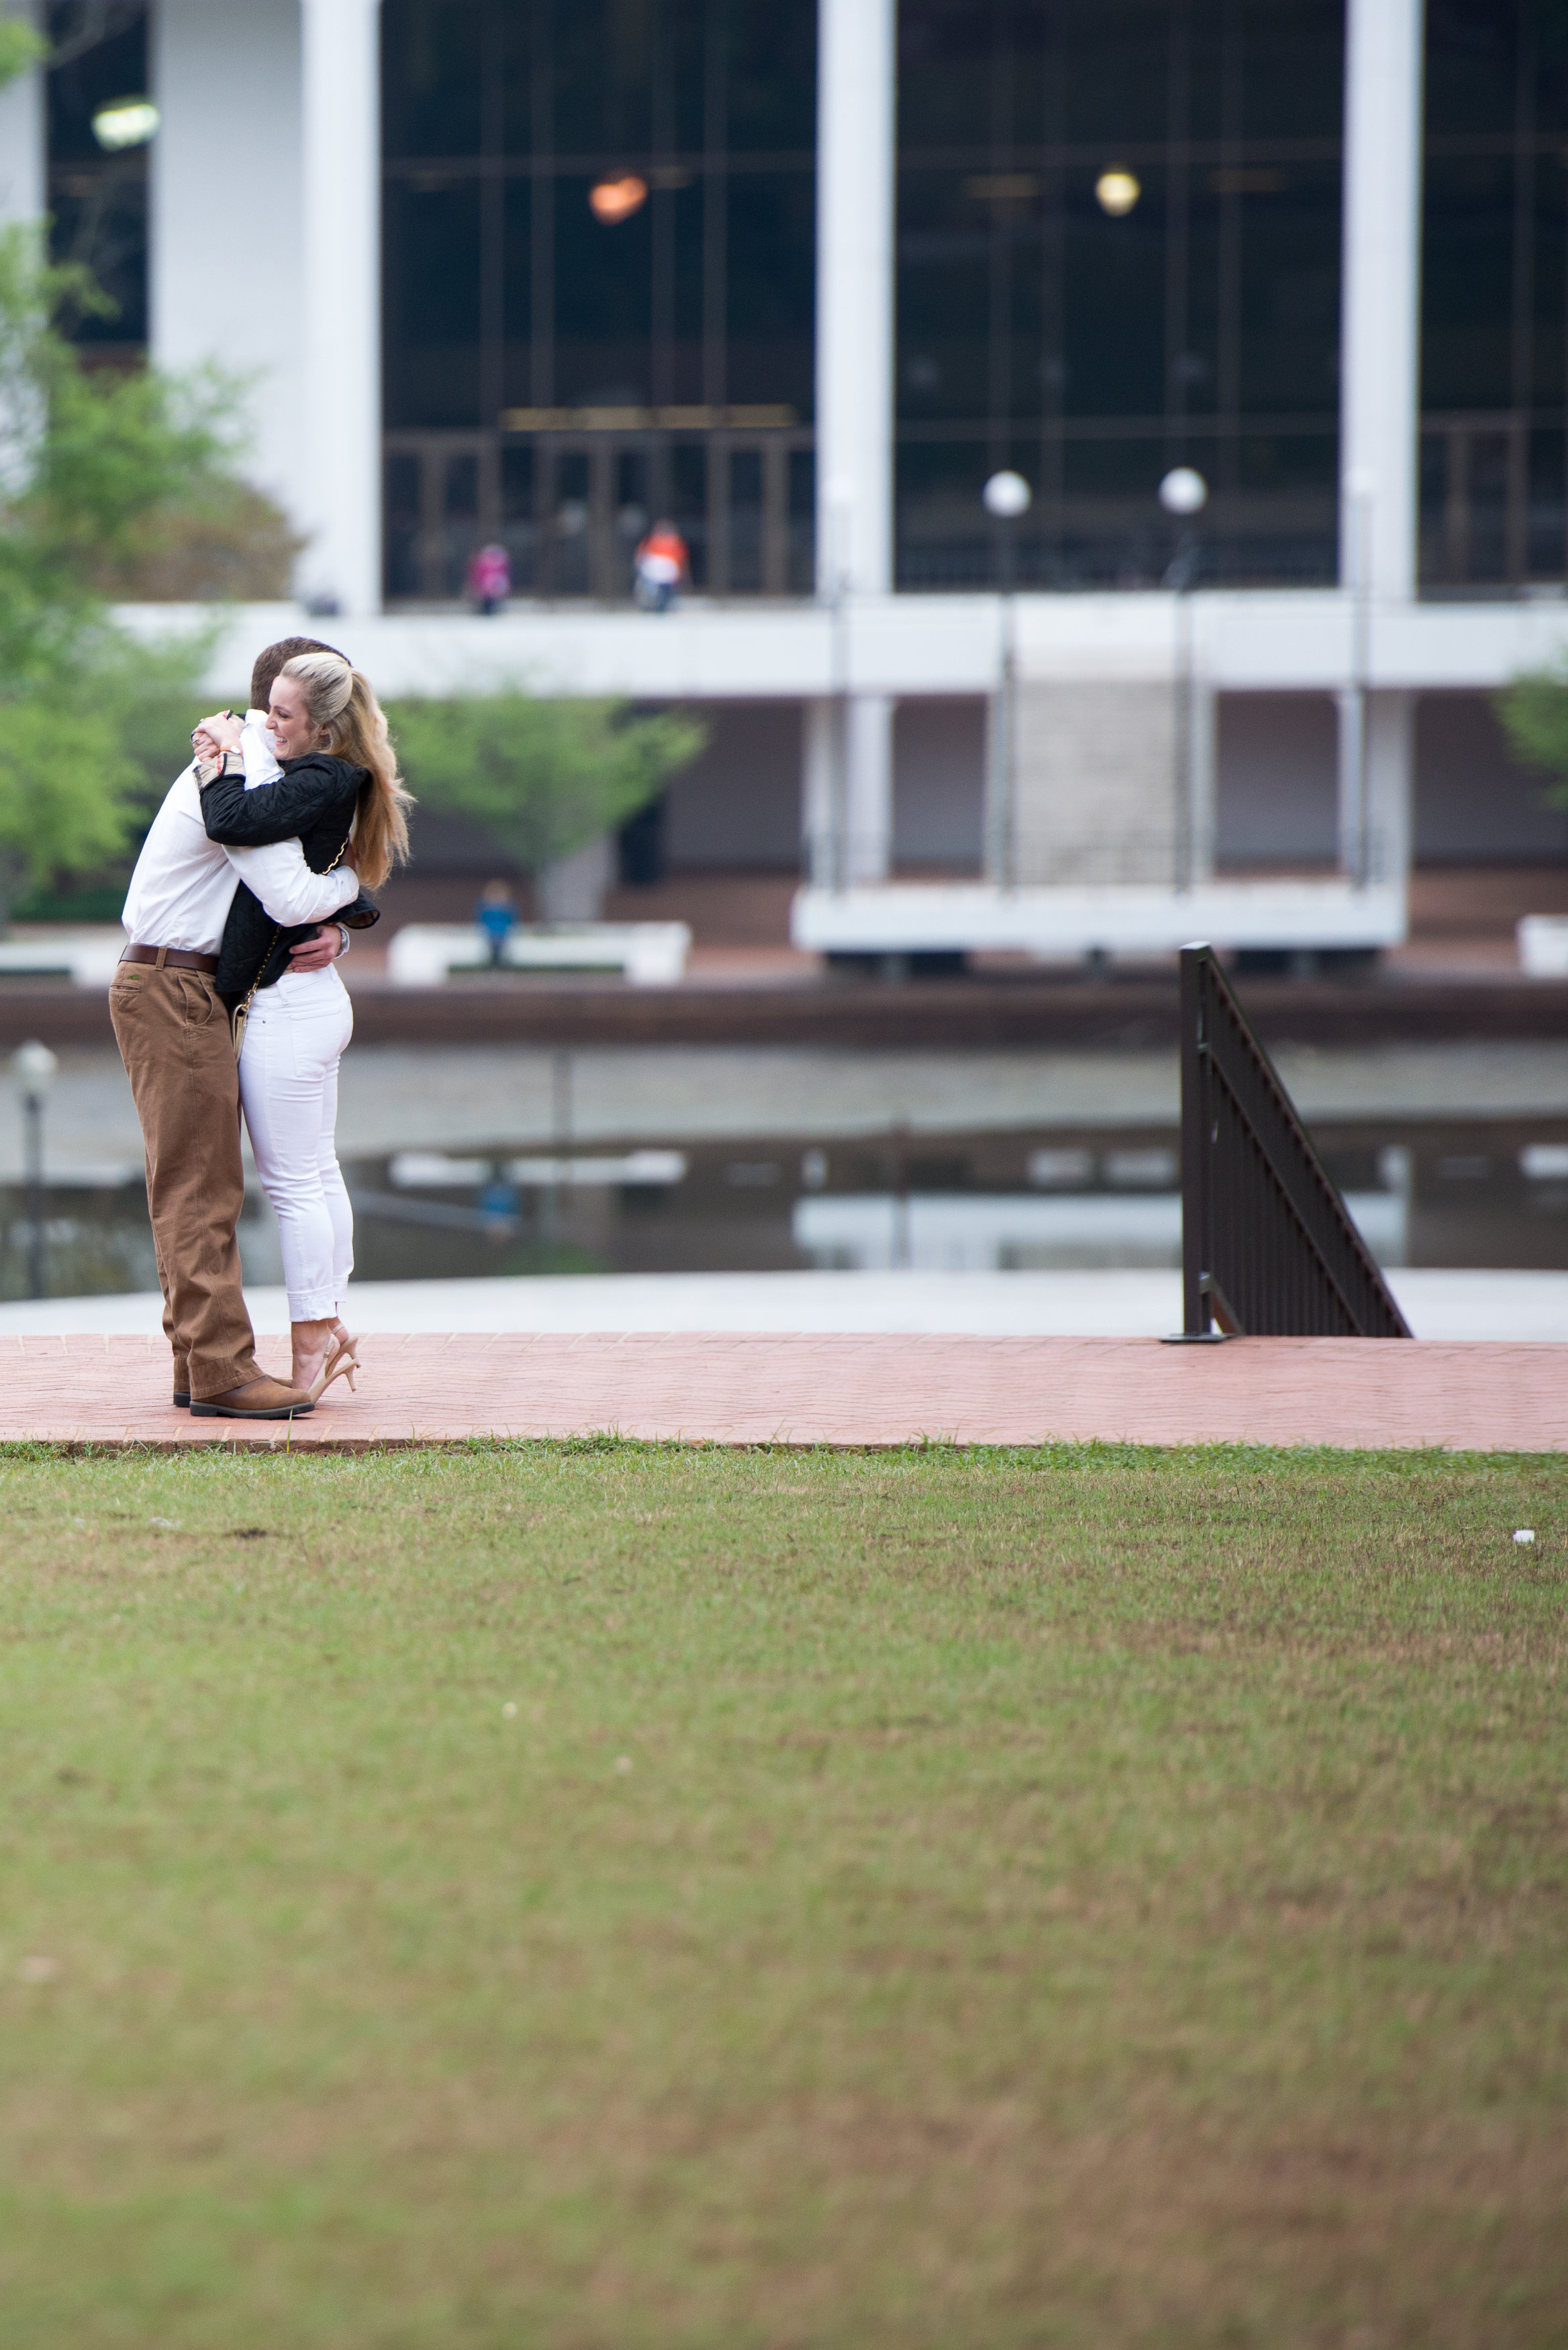 Image 9 of Clemson Marriage Proposal